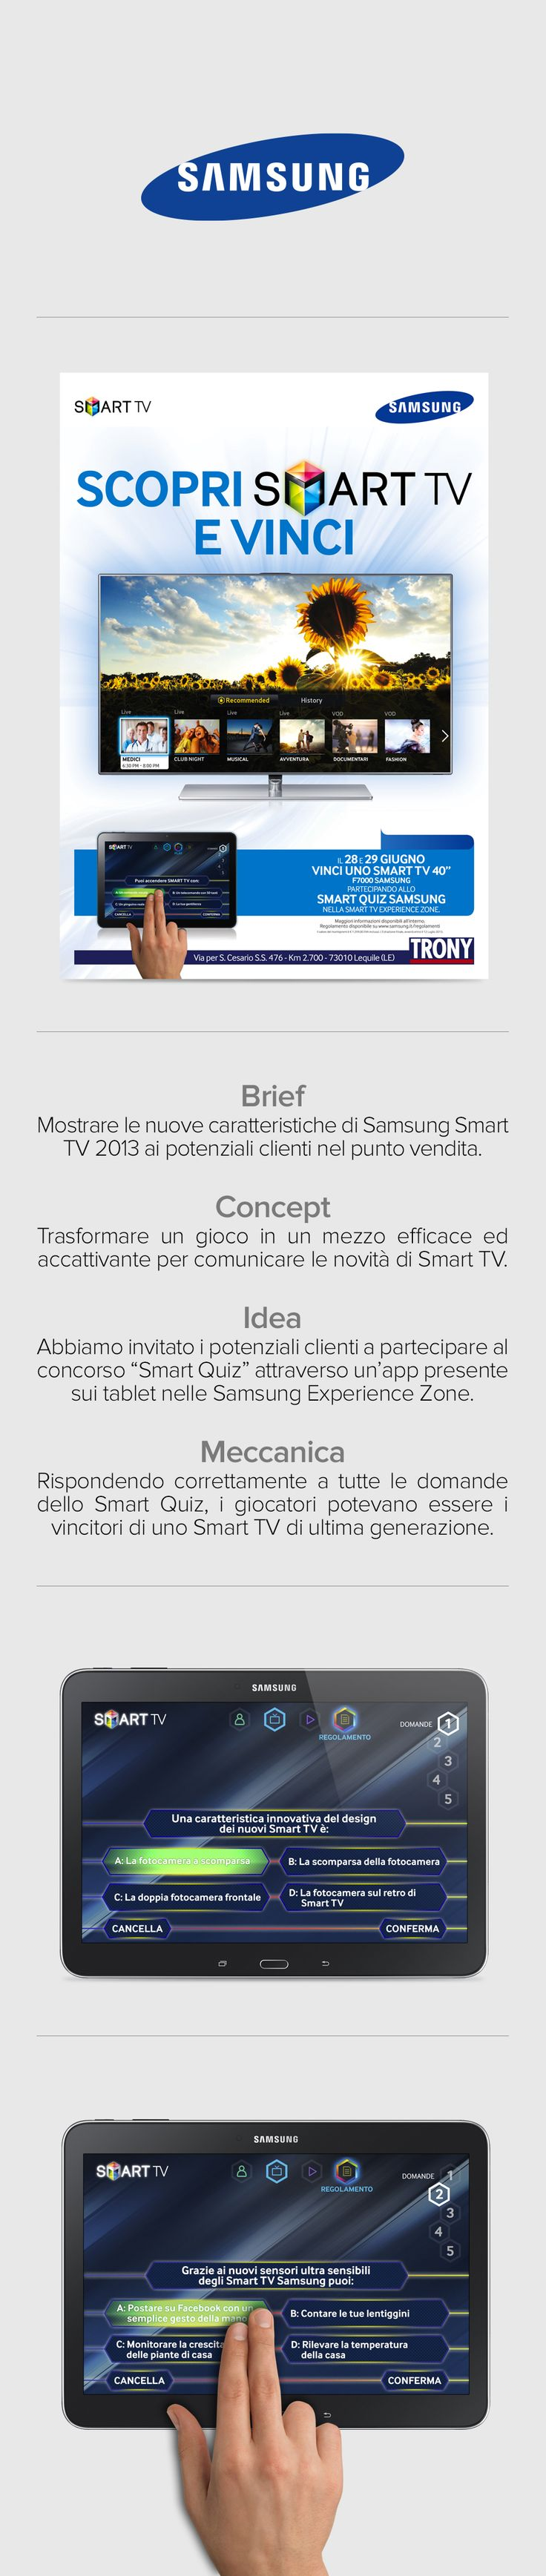 SAMSUNG Smart Quiz - A funny quiz to show people the new characteristis of Samsung Smart TV